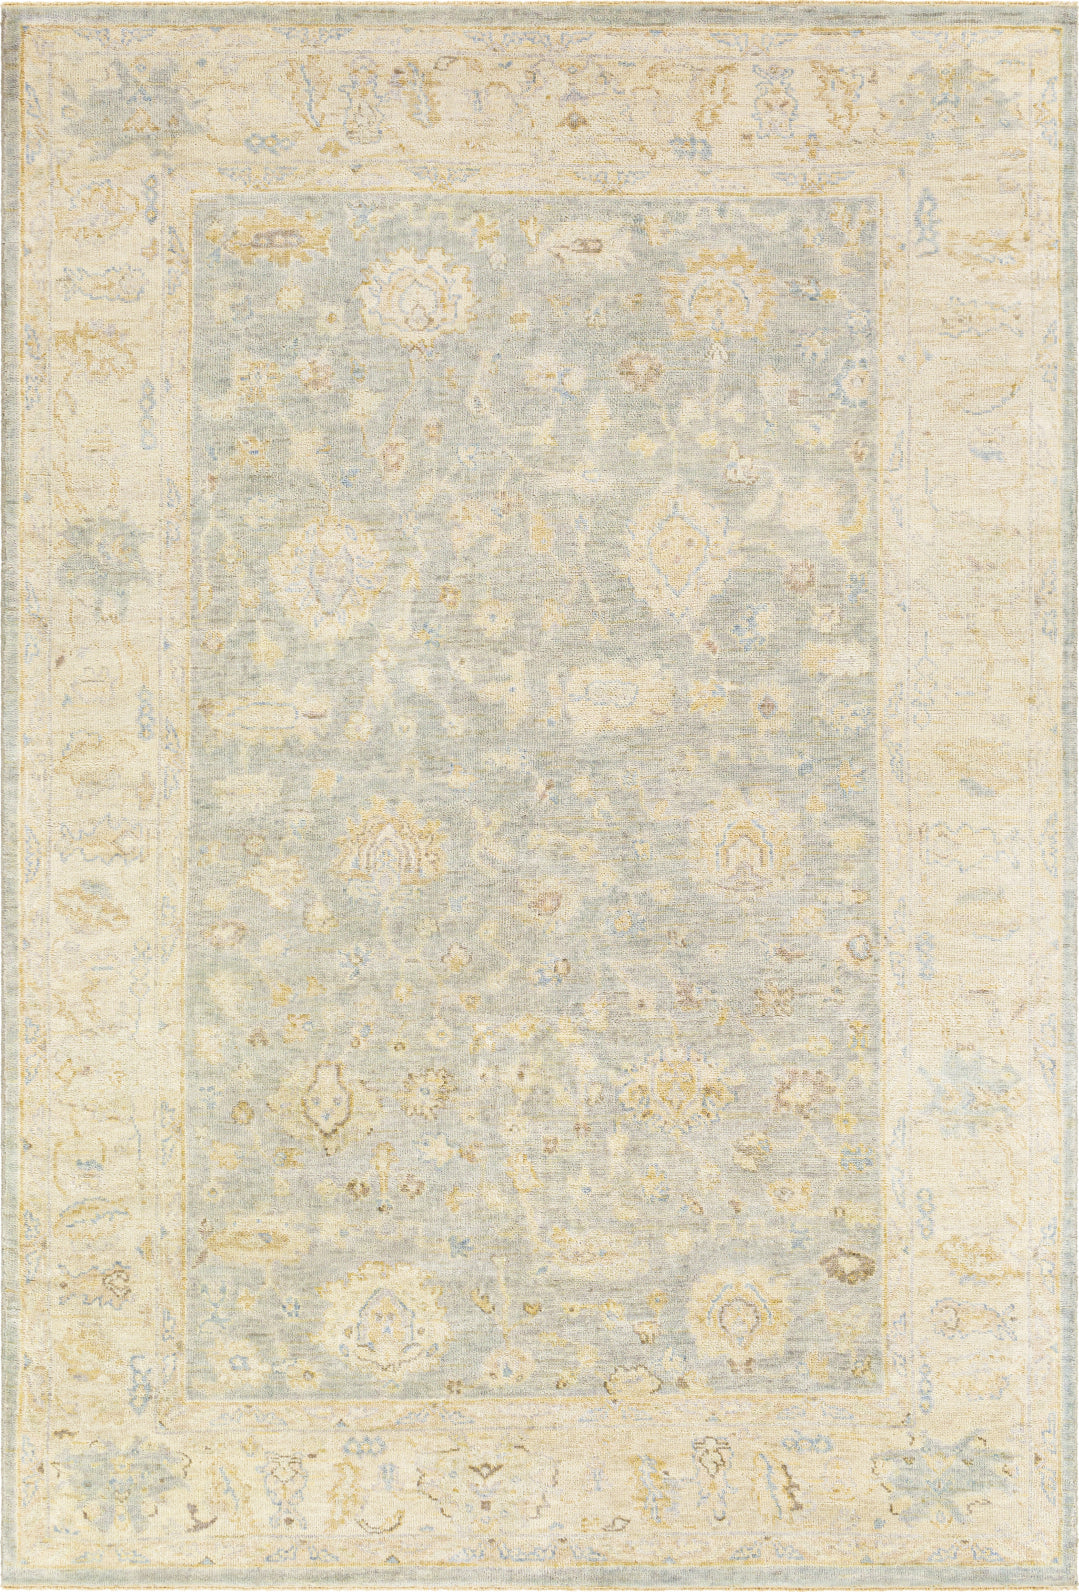 Surya Normandy NOY-8011 Area Rug main image